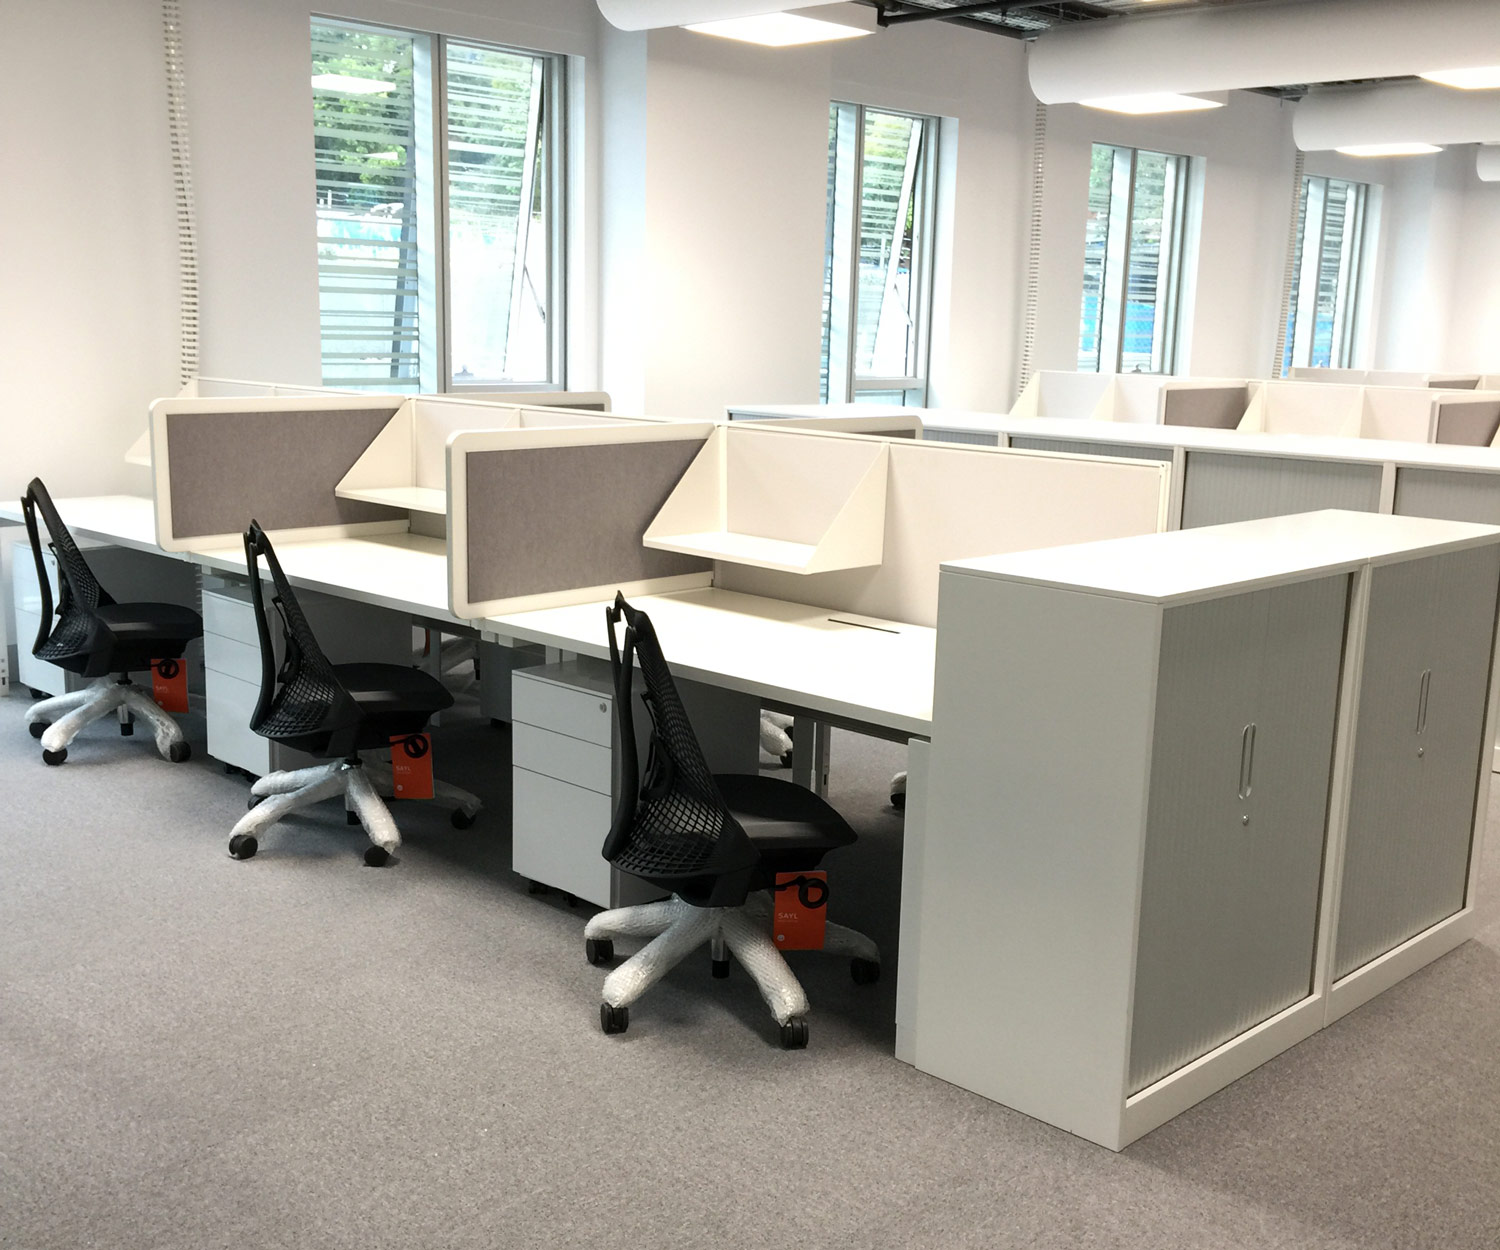 EX workstations, Easy mobile pedastals and Smart Tambour storage